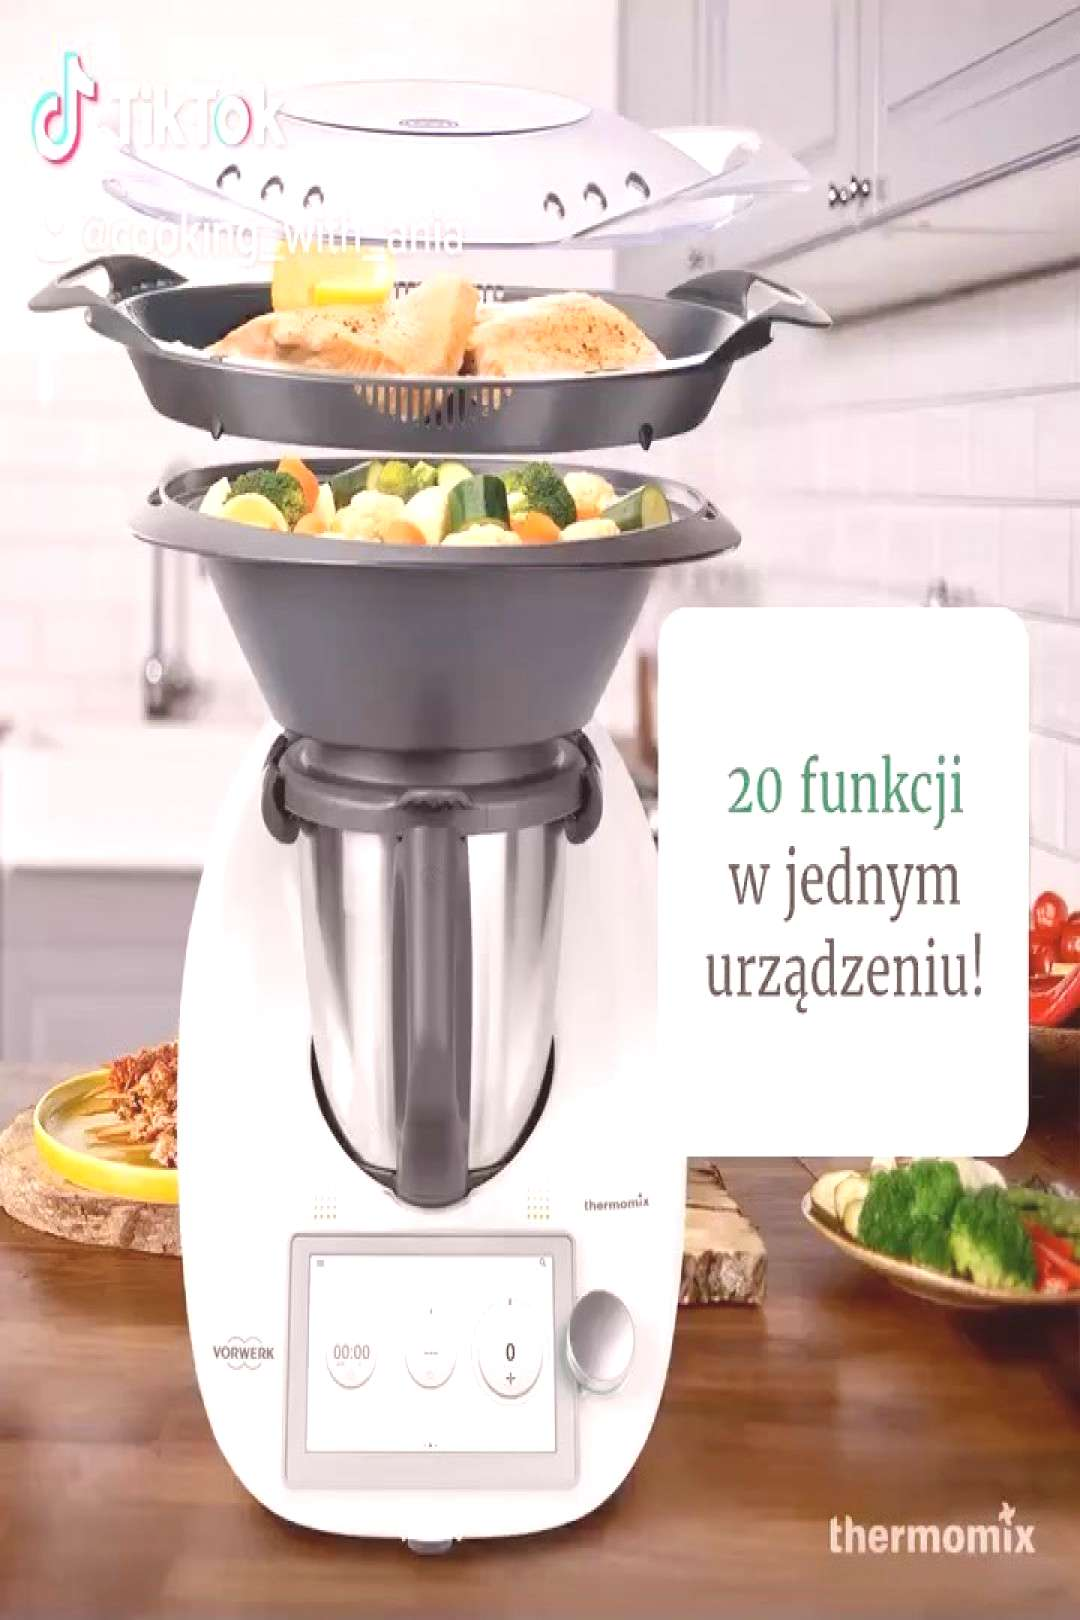 Thermomix will give you freedom make anything you need or craving